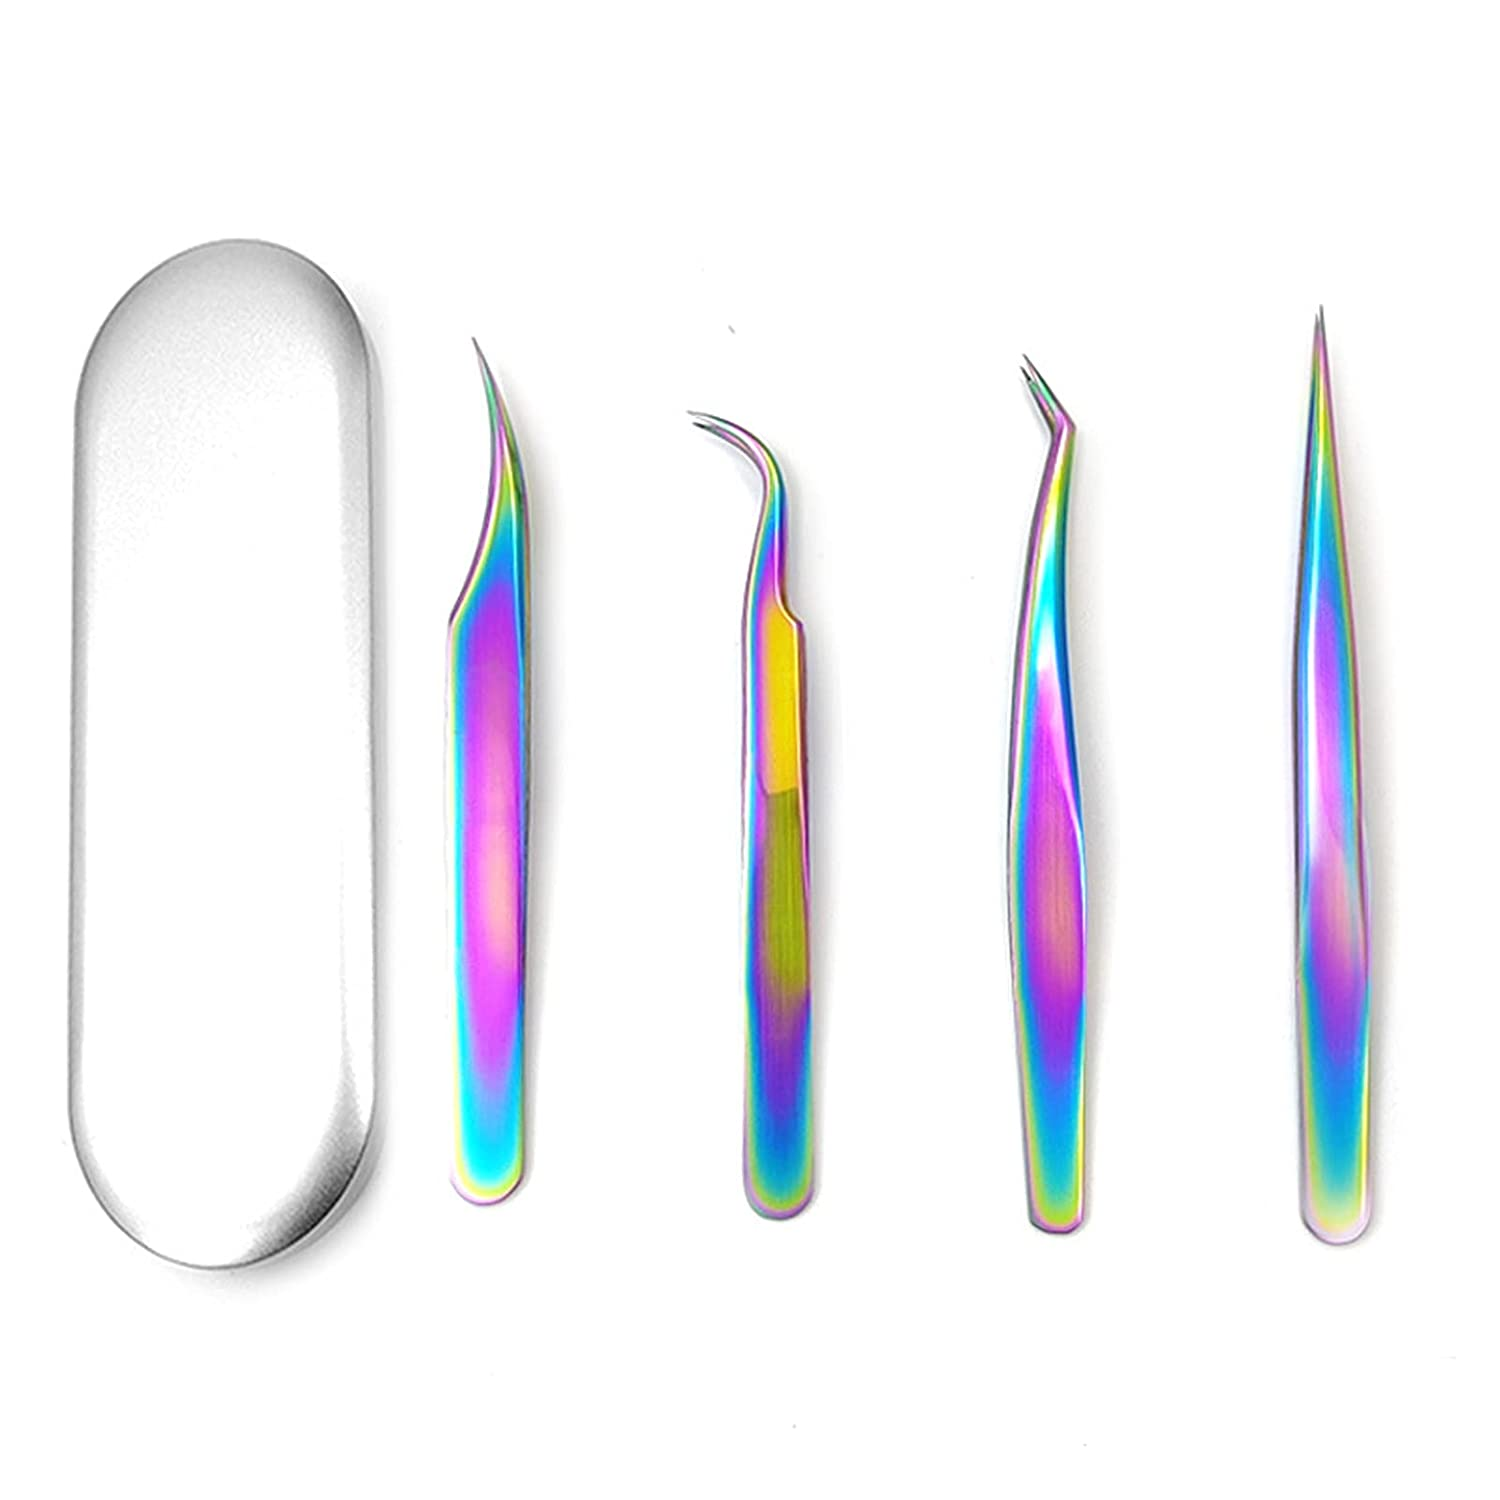 NICENEEDED 4Pcs Precision Indianapolis Mall shopping Tweezers for Tin with Case Eyebrows C